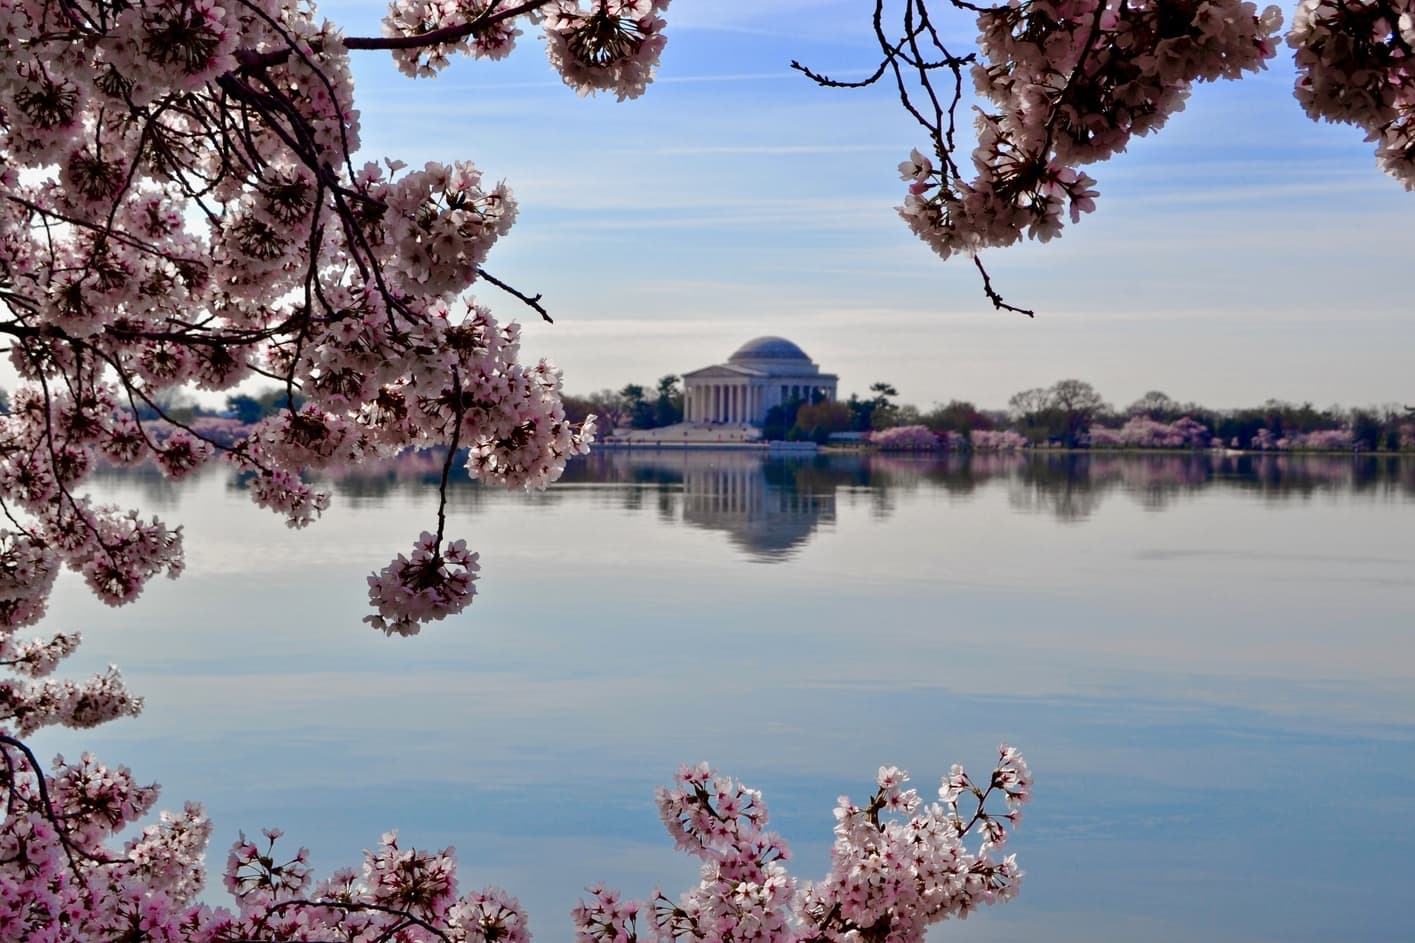 Jefferson Memorial, places of interest in Washington DC